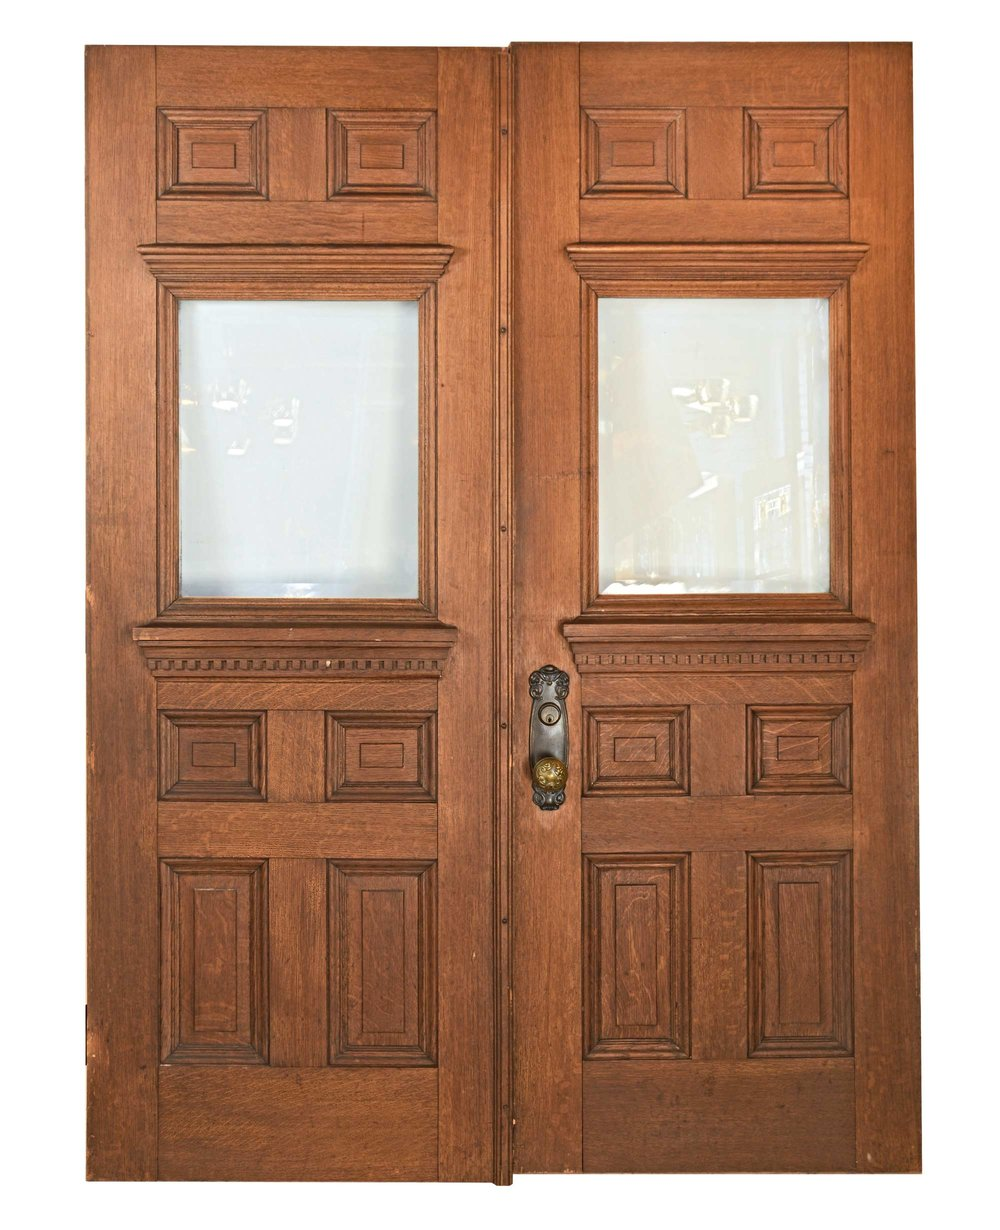 oak double doors with beveled glass  sc 1 st  Architectural Antiques & oak double doors with beveled glass u2014 ARCHITECTURAL ANTIQUES